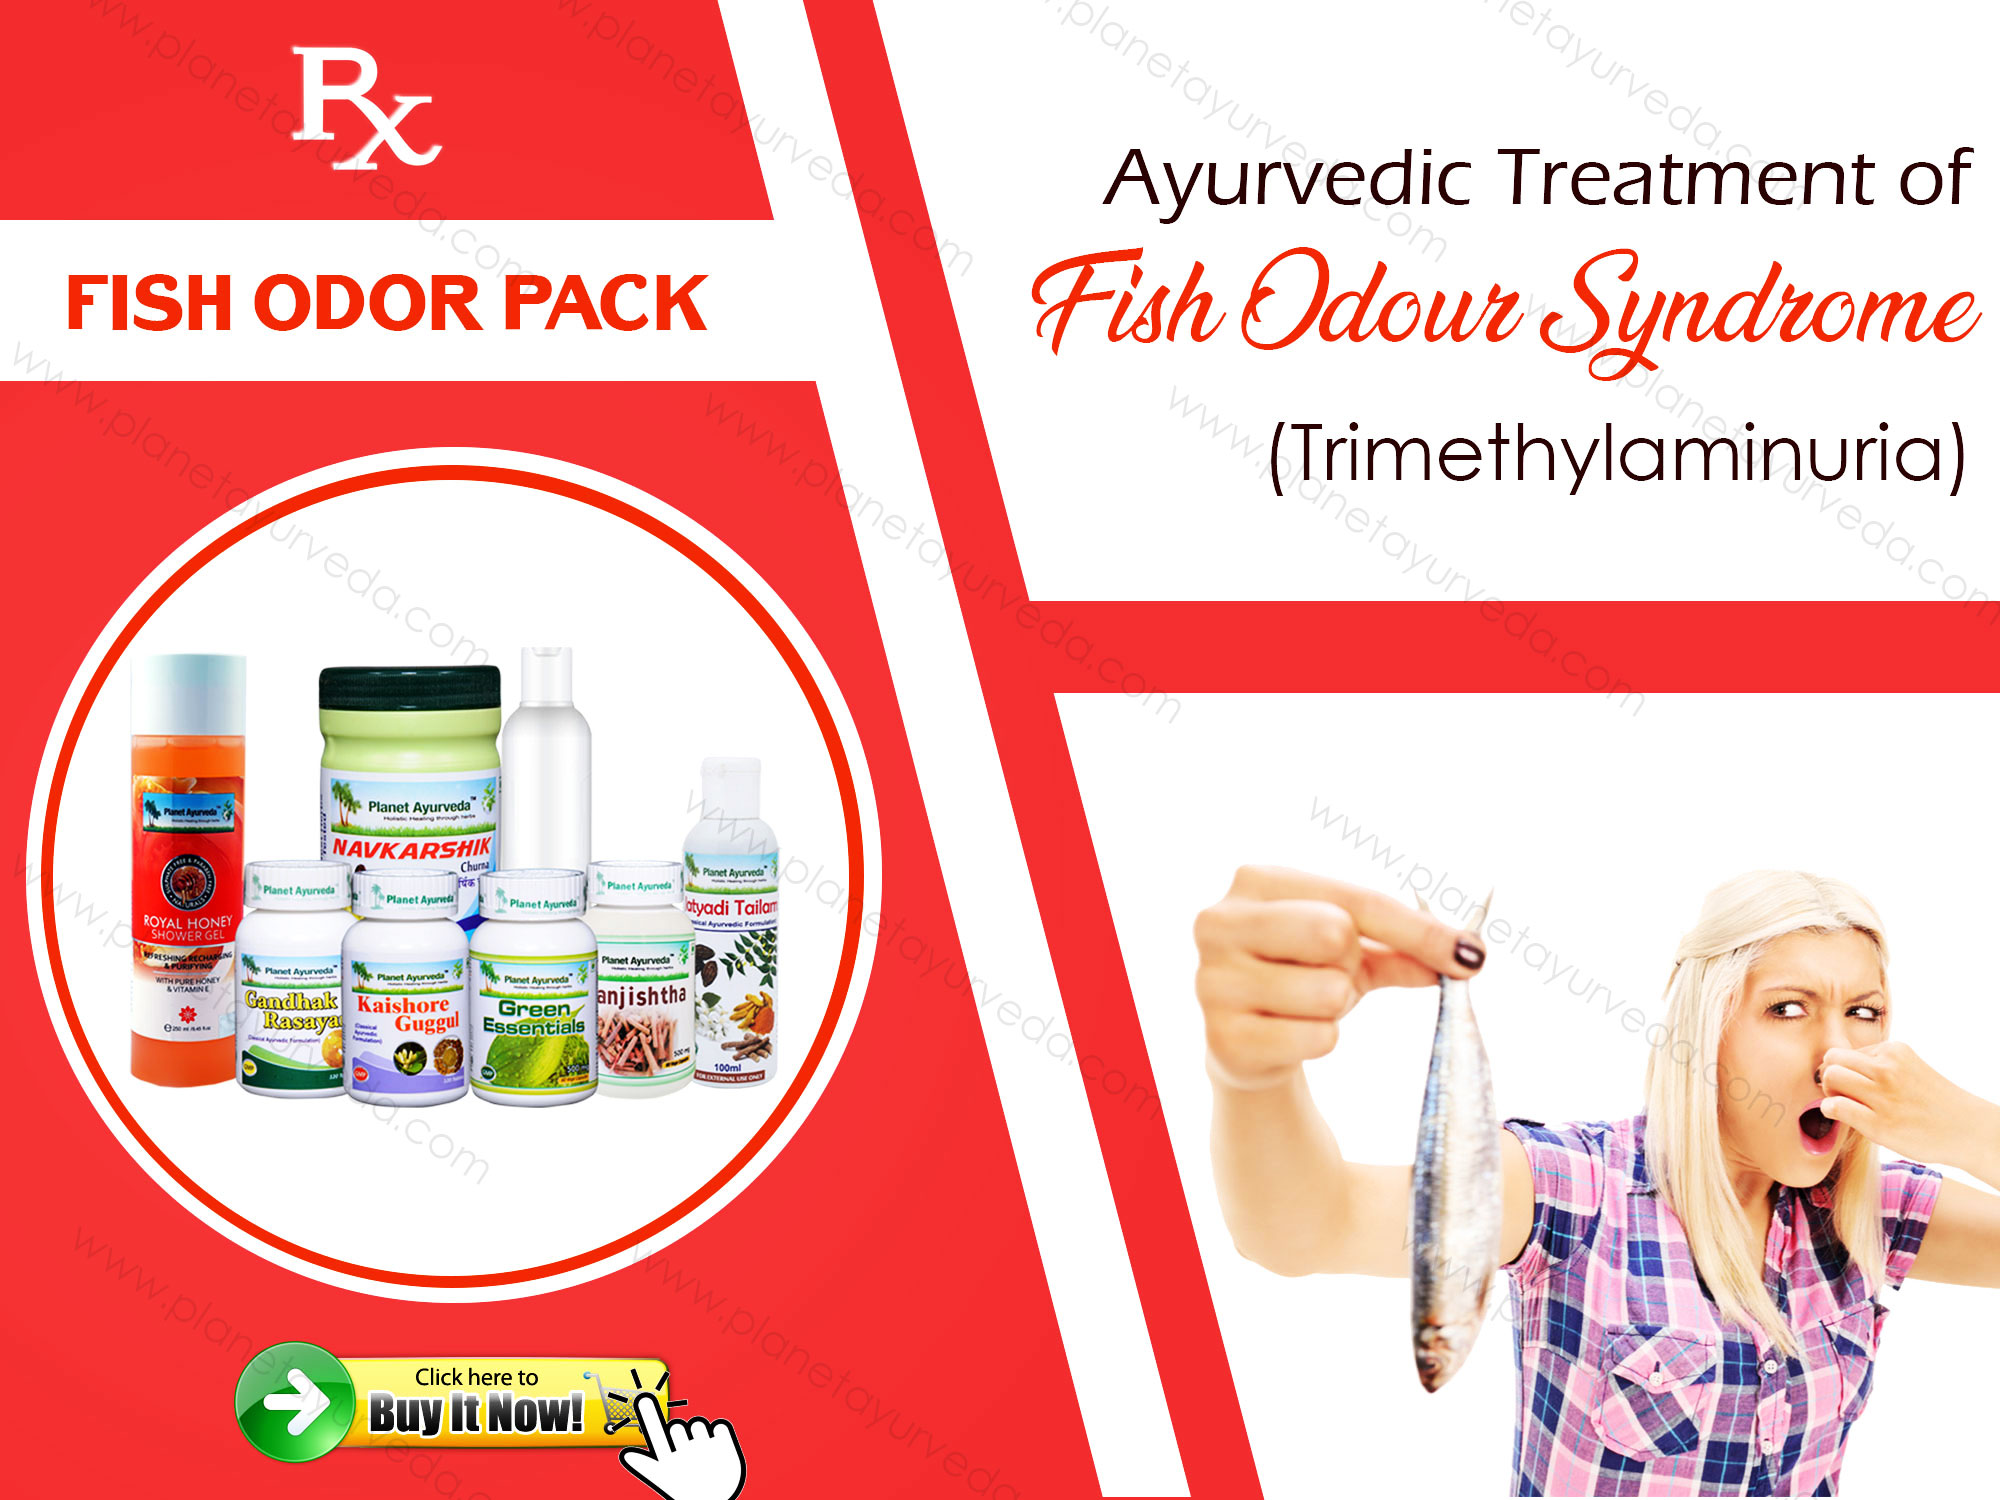 Treatment of Trimethylaminuria with Ayurveda